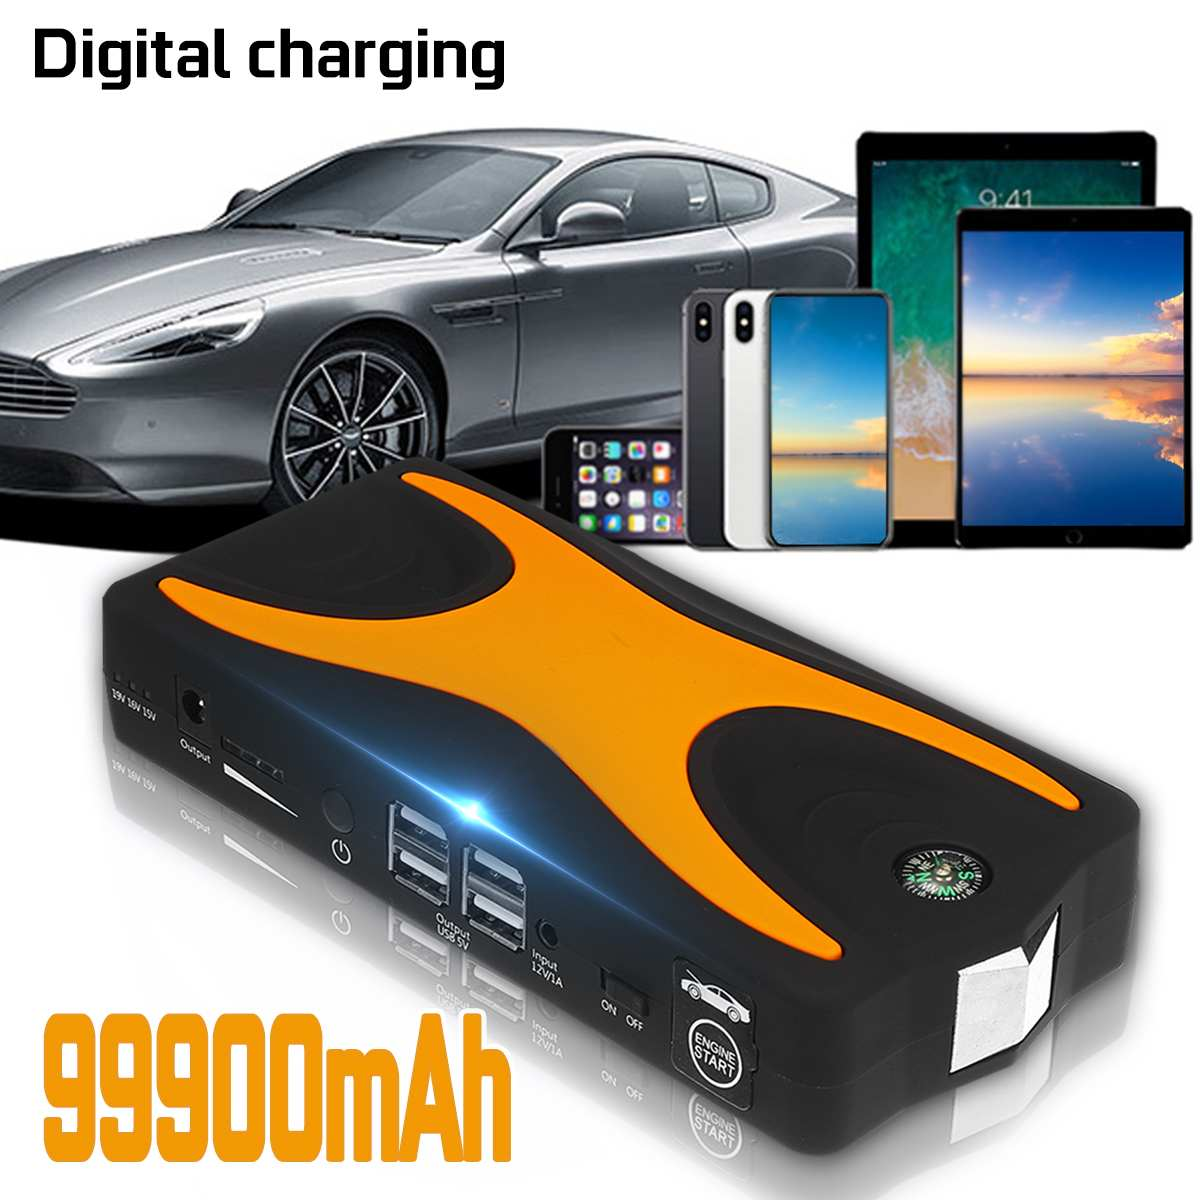 99900mAh 15V 4USB 900A High Power Car Jump Starter Portable Car Battery Booster Charger Booster Power Bank Starting Device